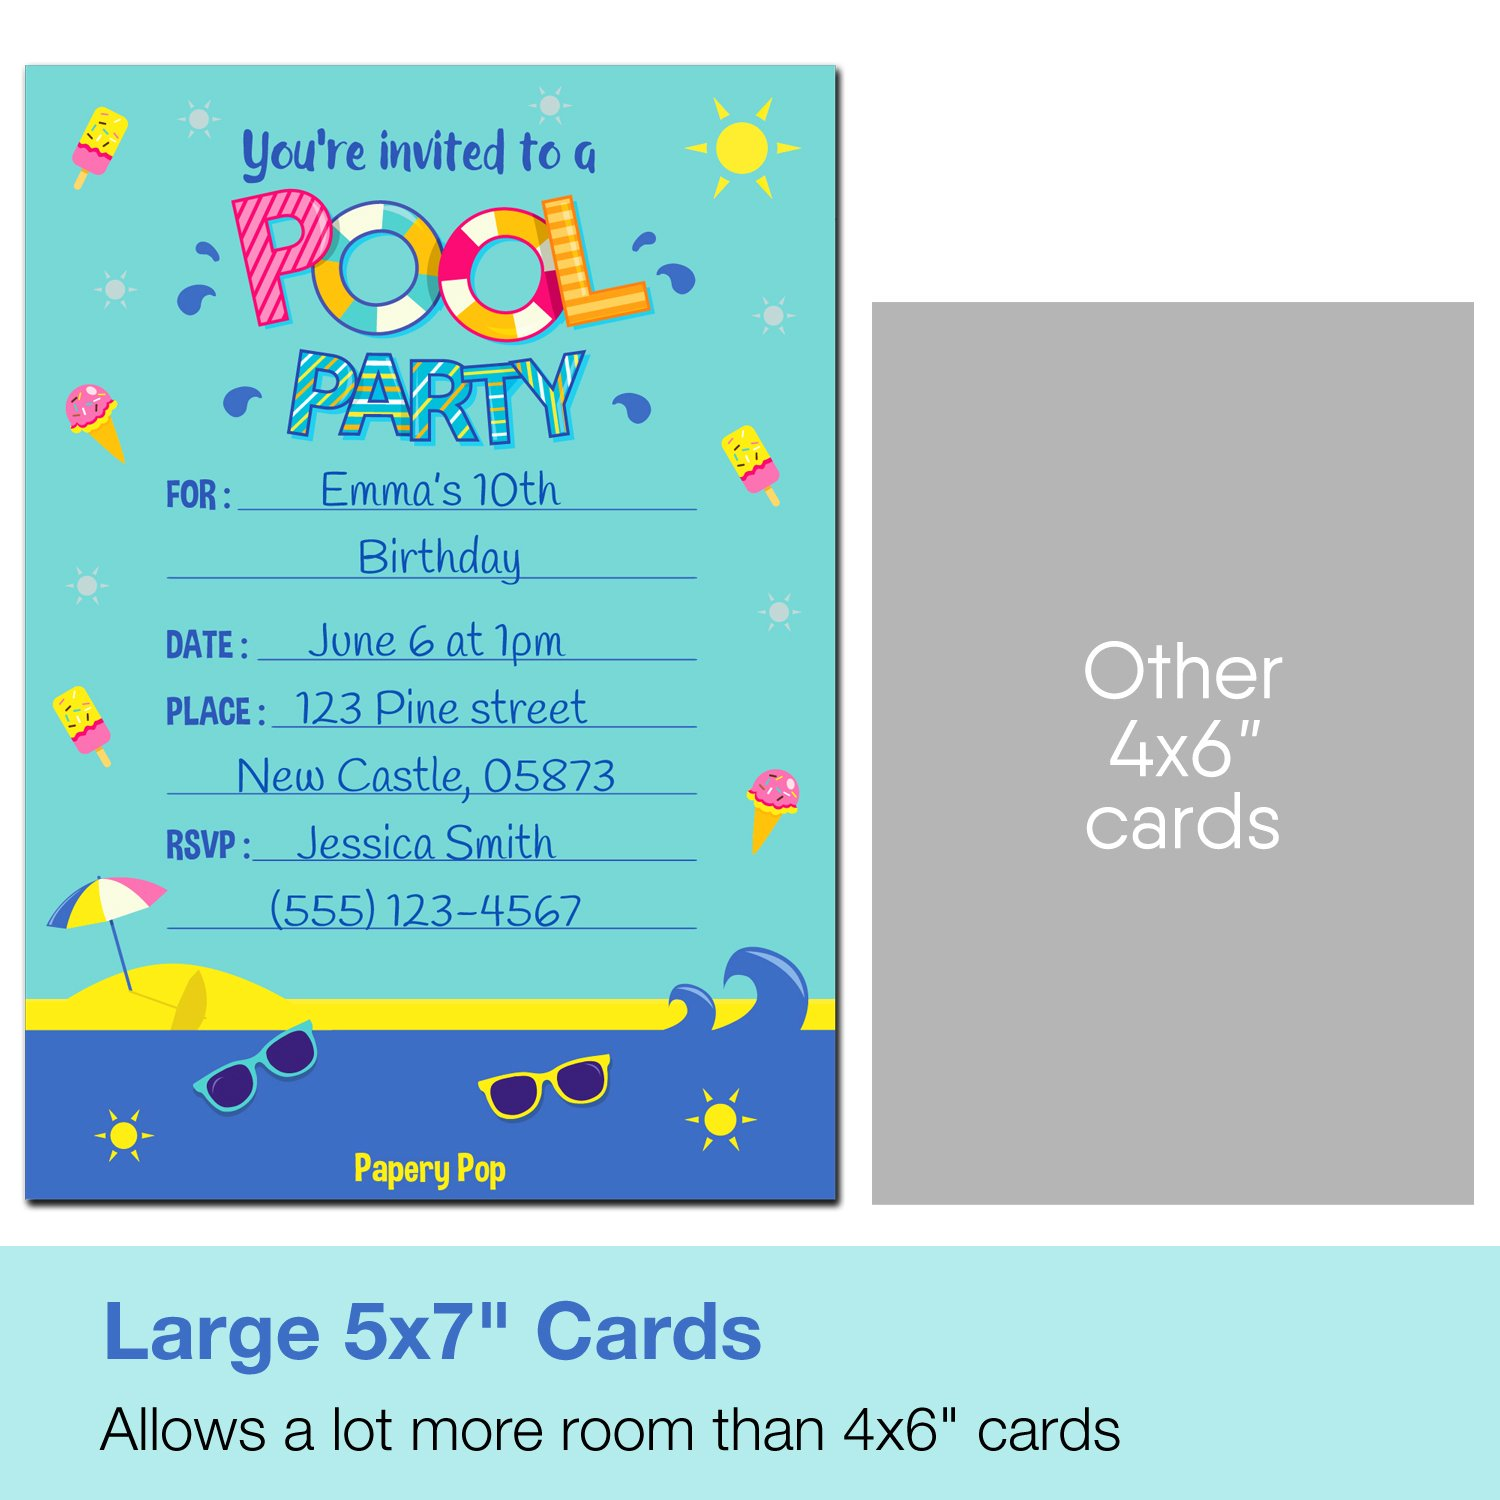 Amazon.com: 30 Pool Party Invitations with Envelopes - Kids Birthday ...